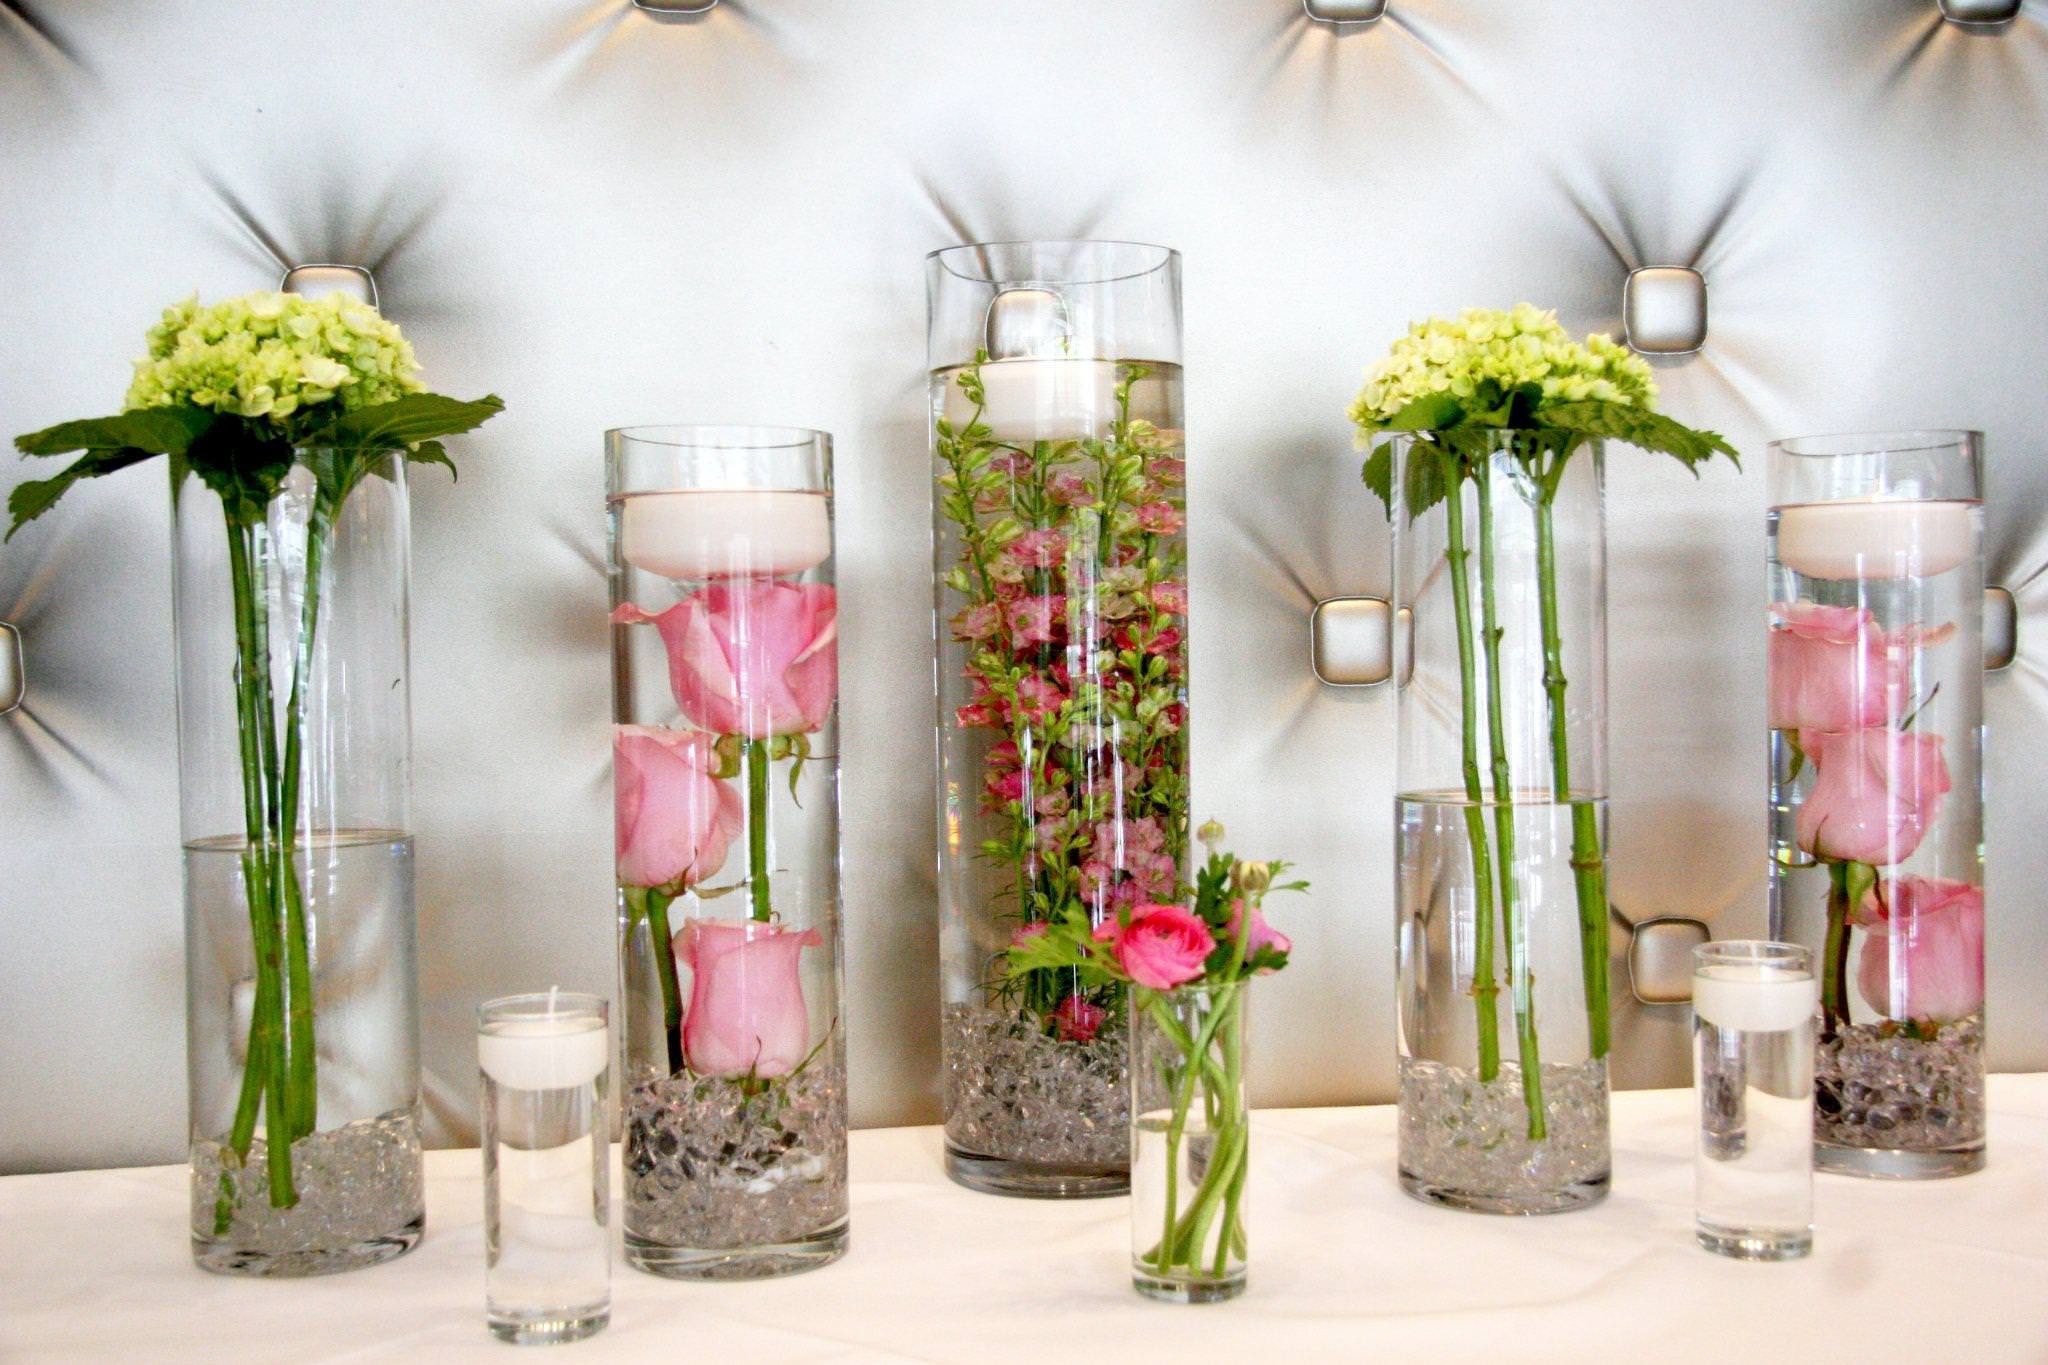 picture frame flower vase of decorating ideas for tall vases awesome h vases giant floor vase i regarding decorating ideas for tall vases beautiful floor decor vase tall ideash vases arrangement ideas fill a